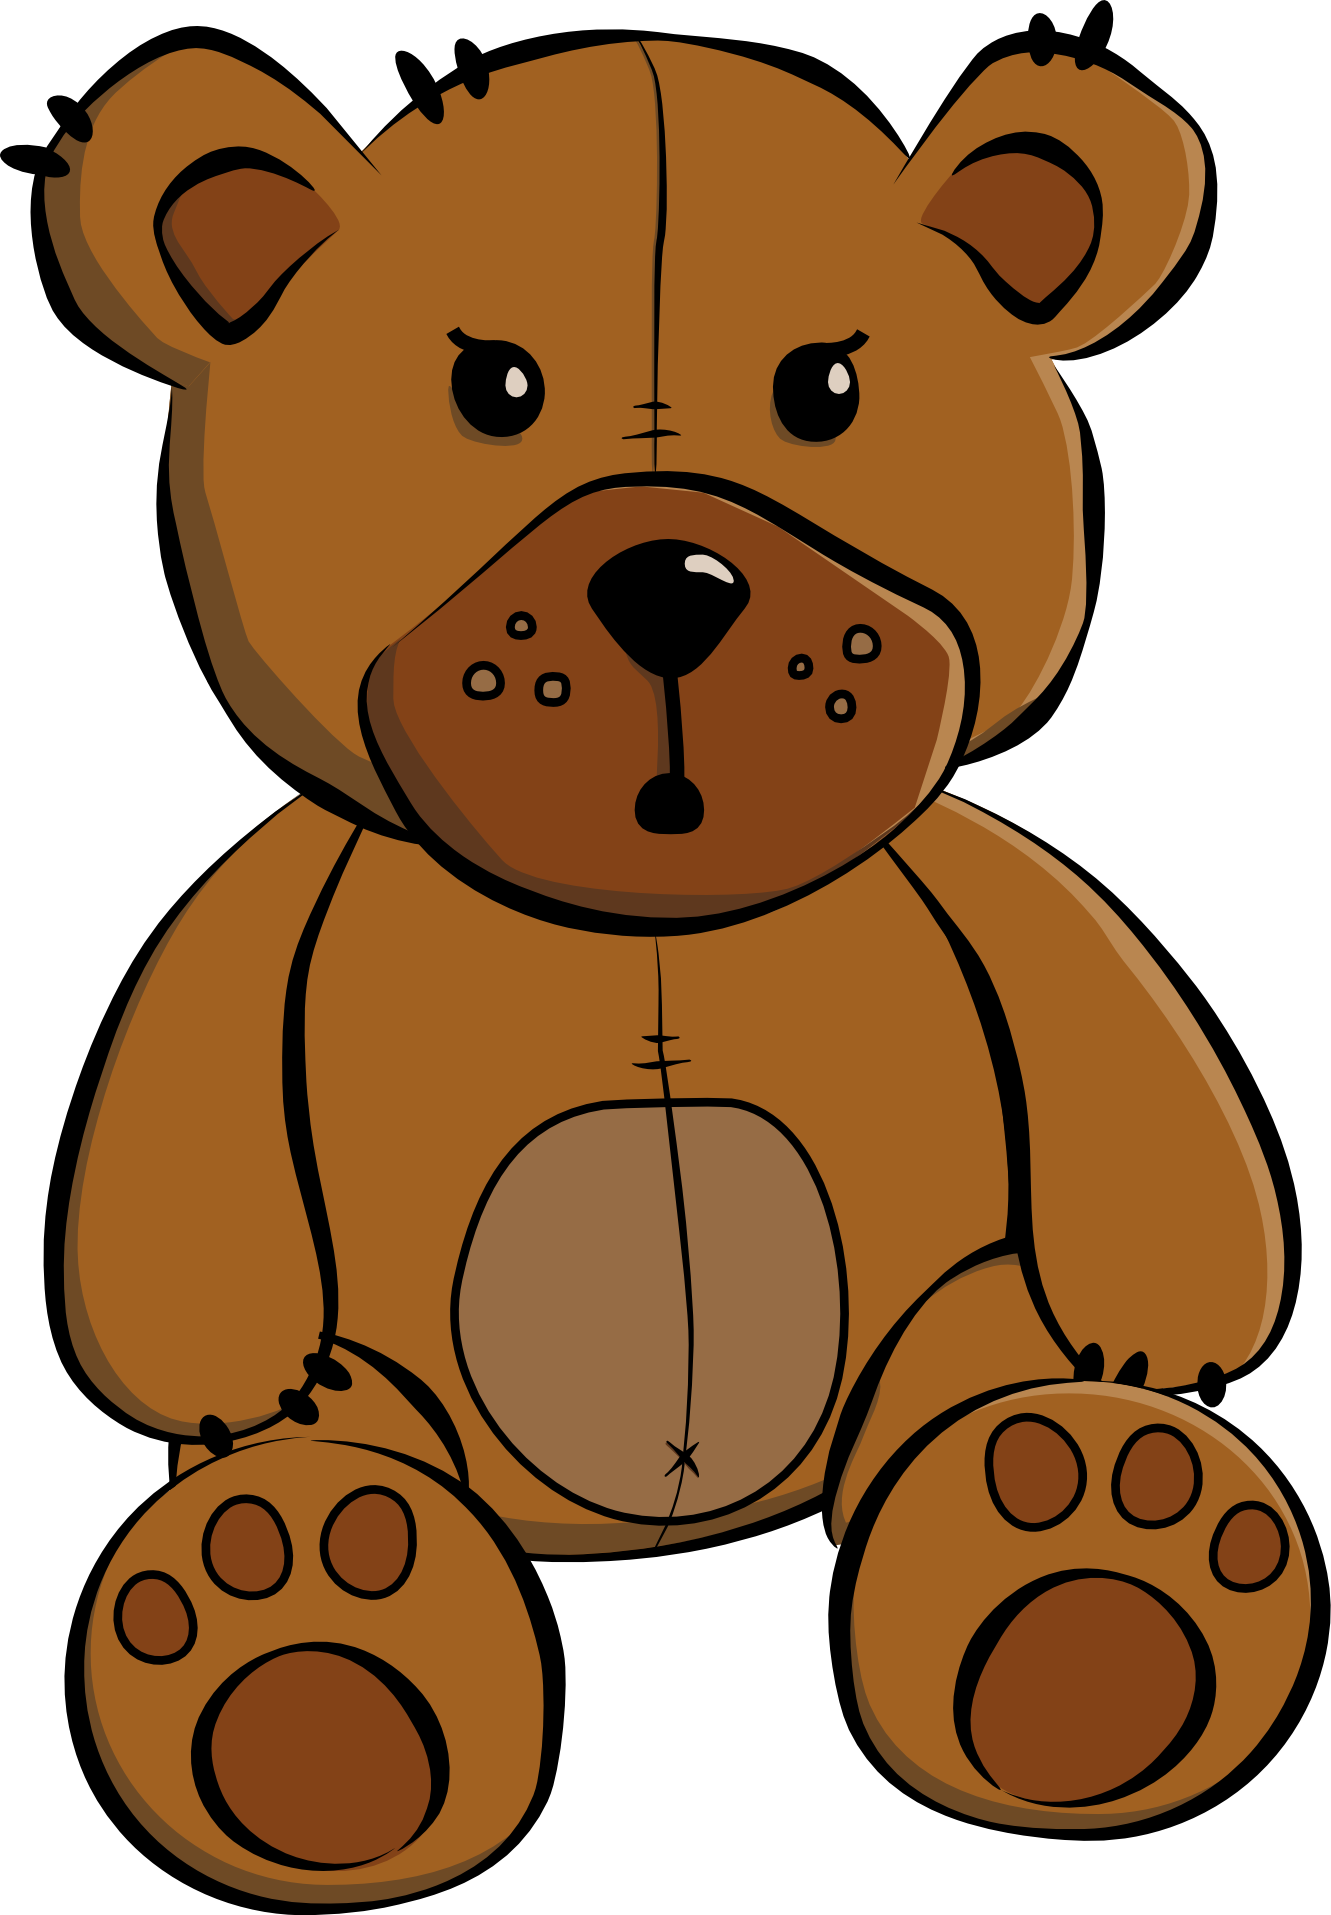 Clip art cartoon teddy bear . - Teddy Bear Clip Art Free